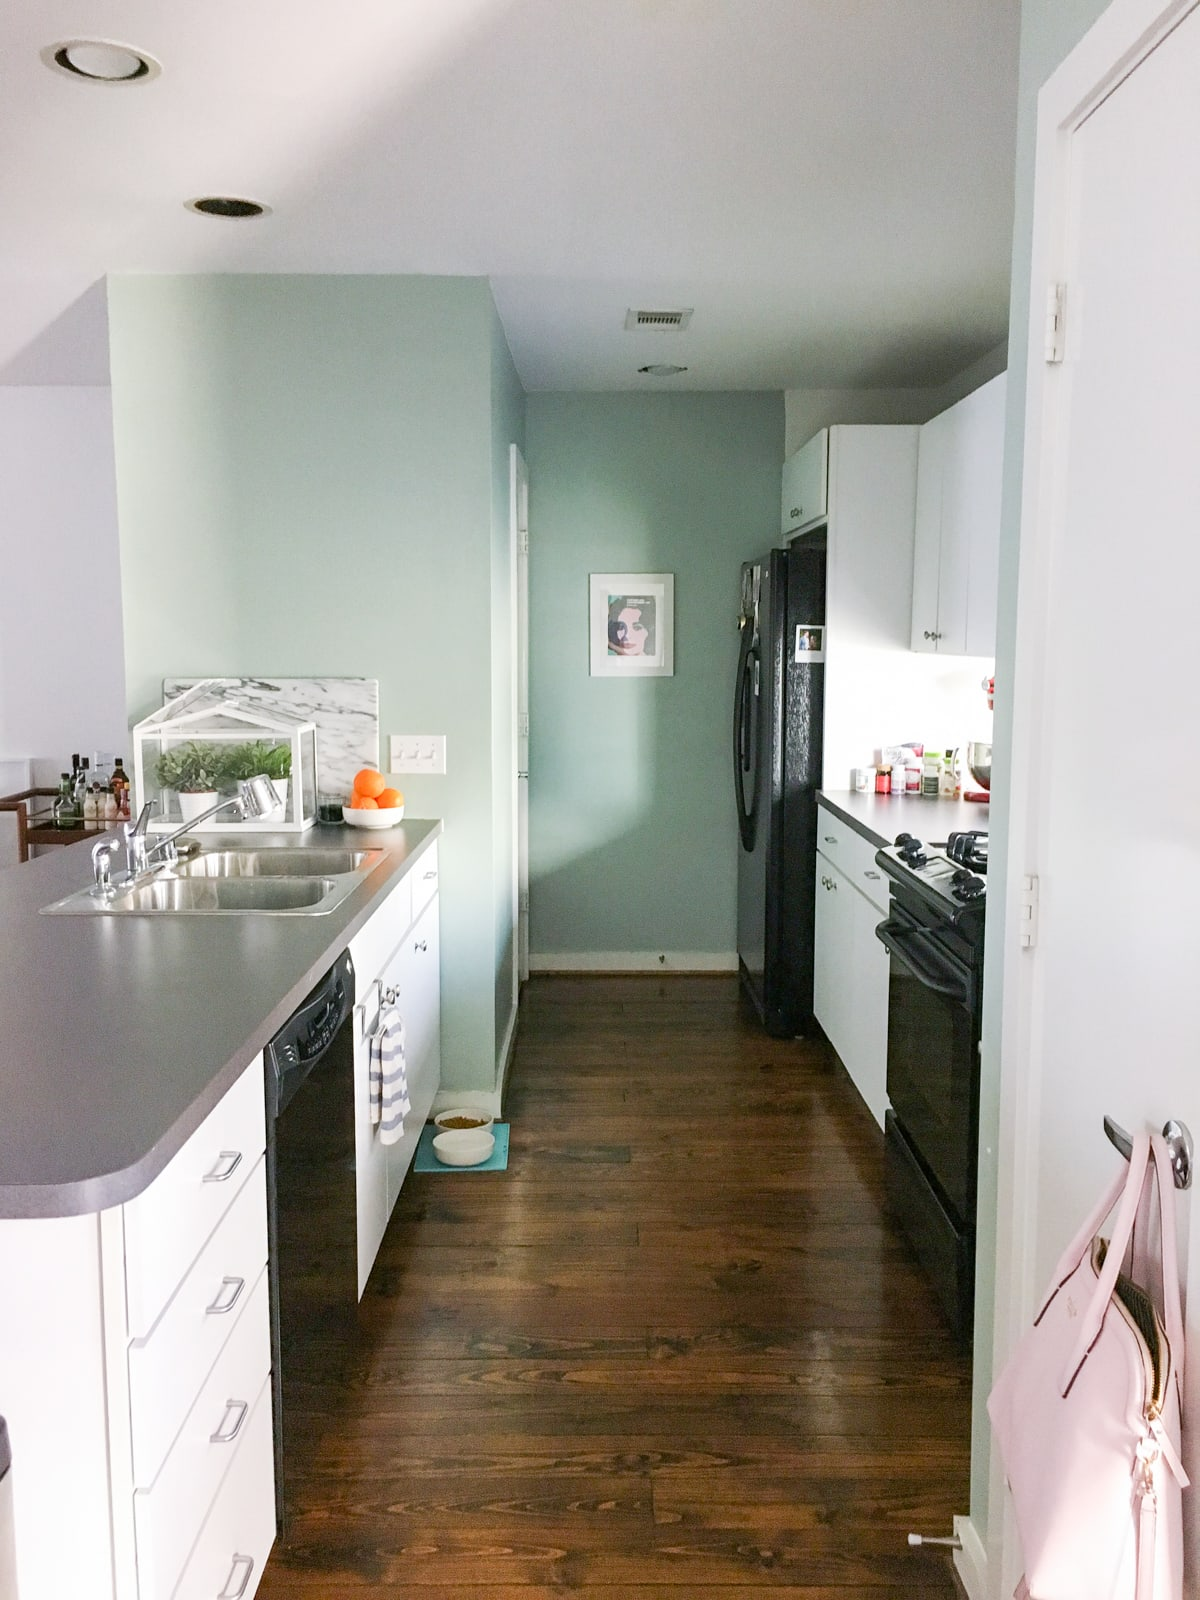 Our Home Renovations: Our Second Floor Plans & Before Photos by top Houston lifestyle blogger Ashley Rose of Sugar & Cloth